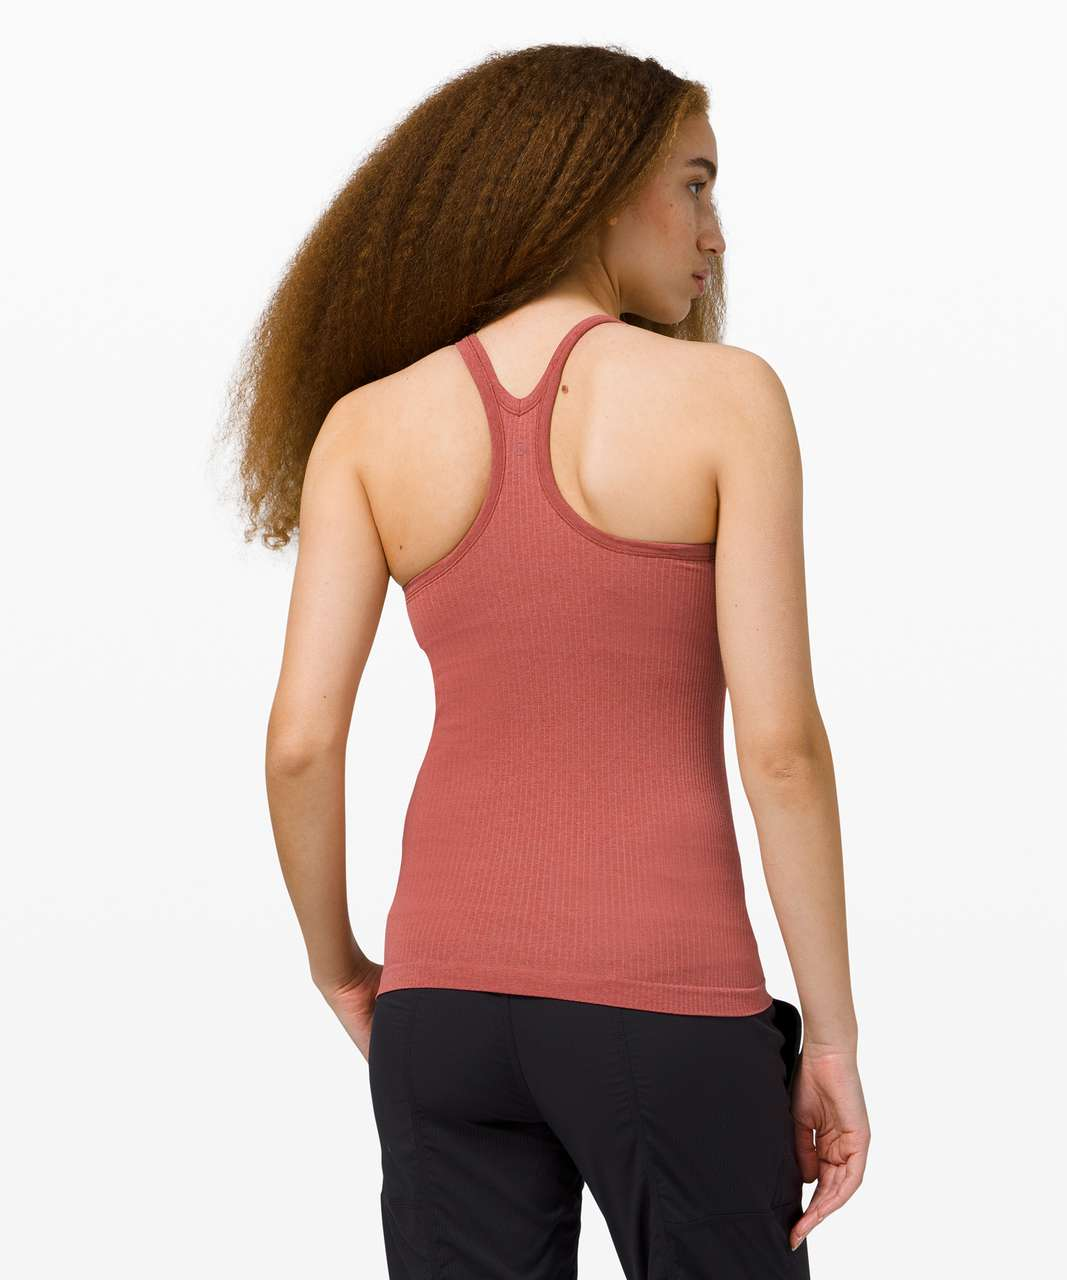 Lululemon Ebb To Street Tank *Light Support For B/C Cup - Soft Cranberry